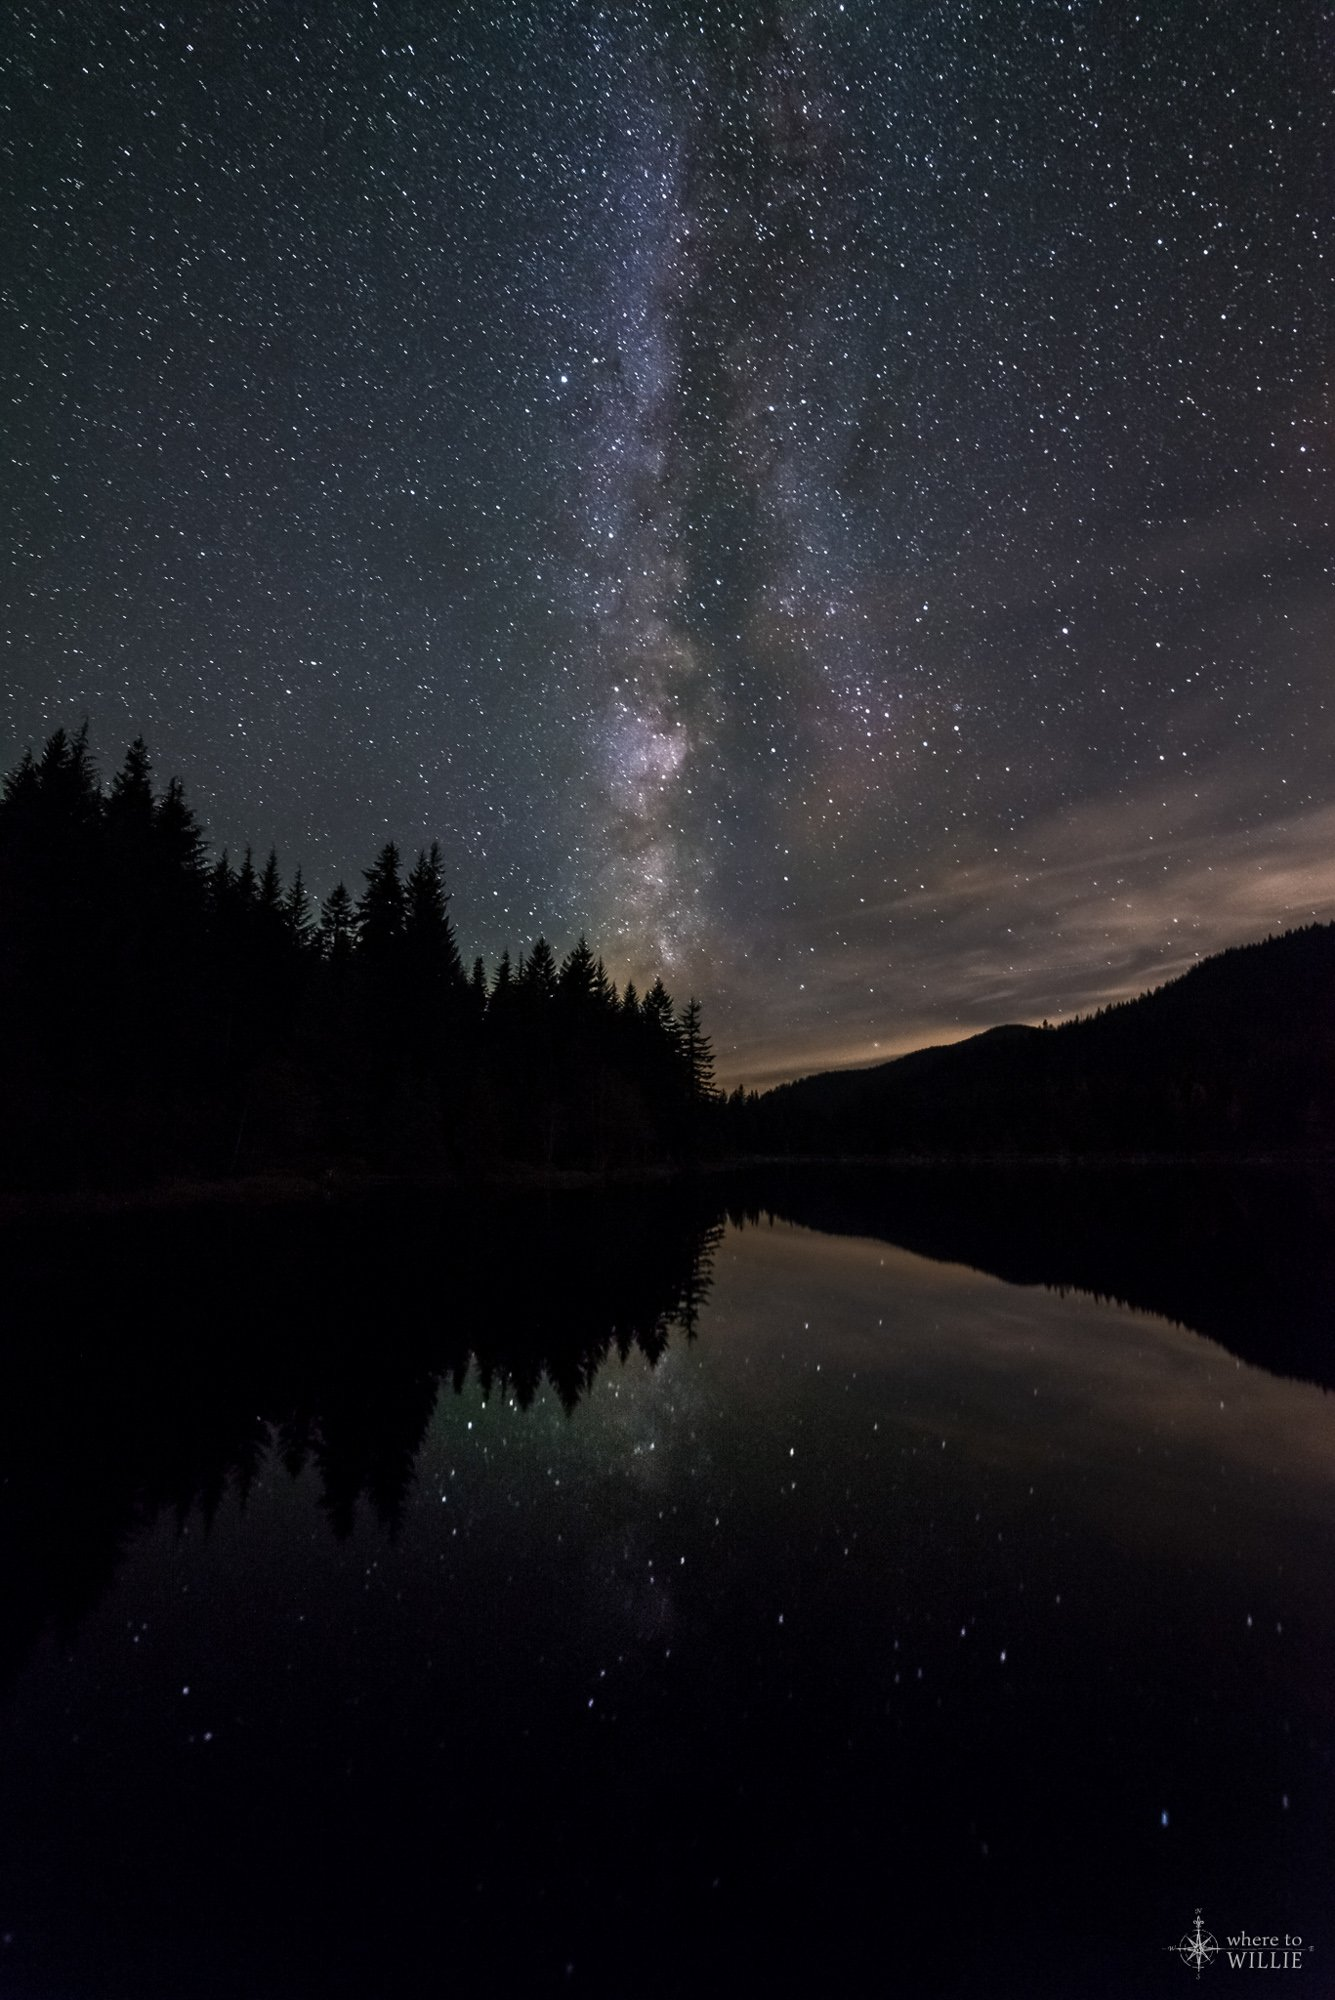 The Star System: The Night Sky - Stars And The Milky Way